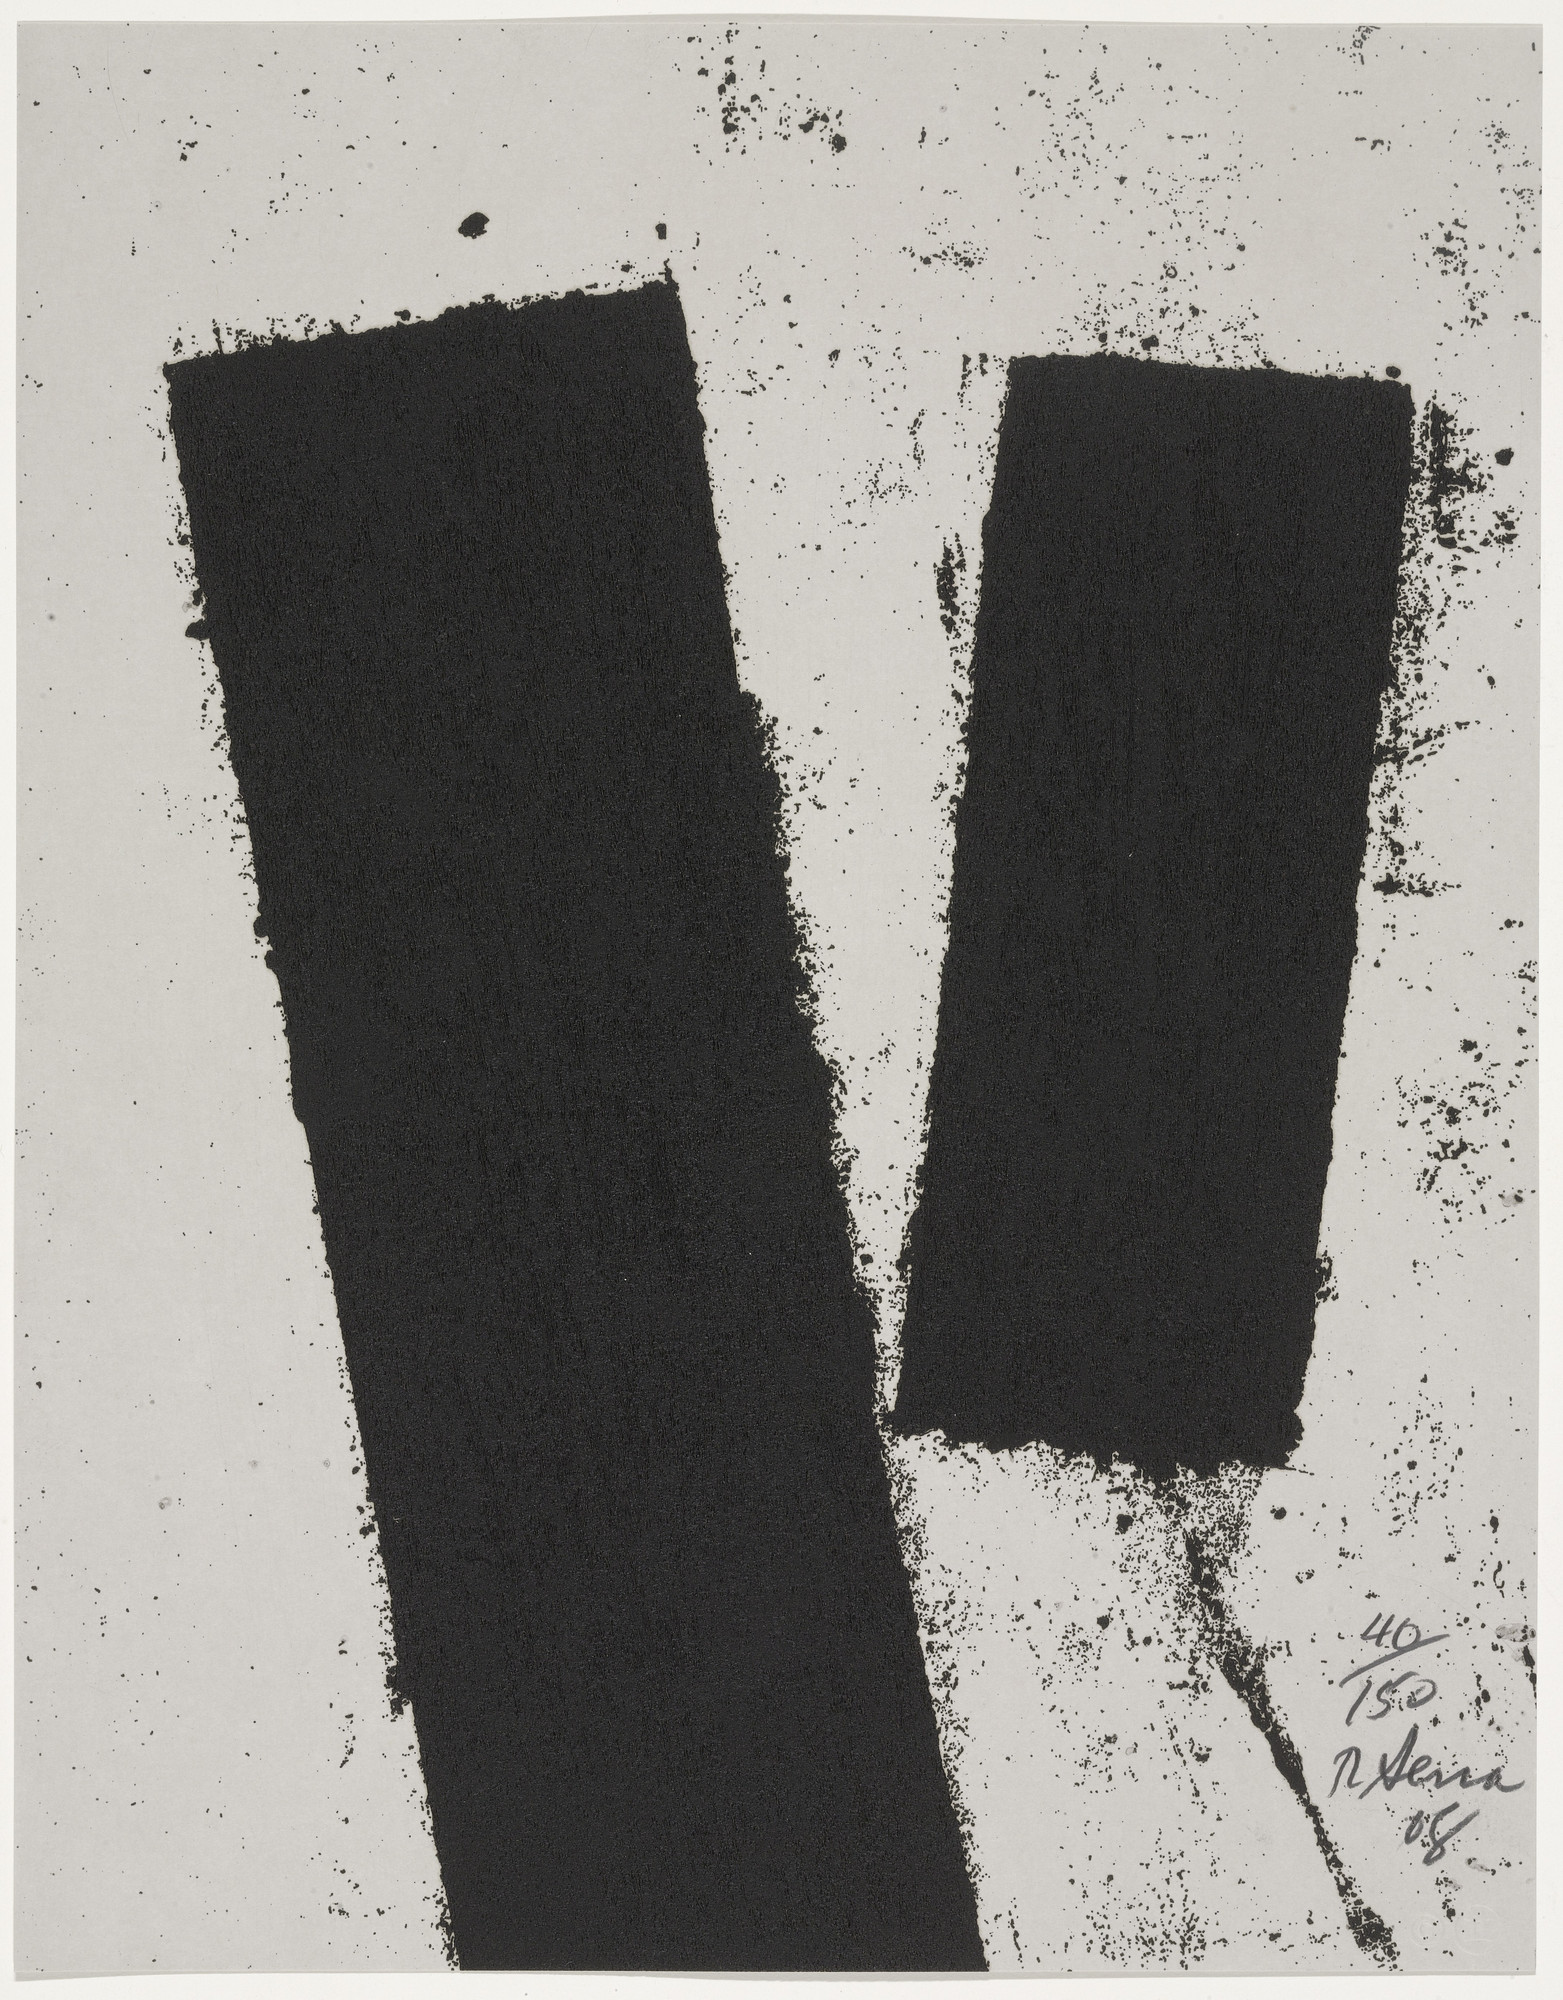 Richard Serra. Promenade Notebook Drawing for Obama from Artists for Obama. 2008